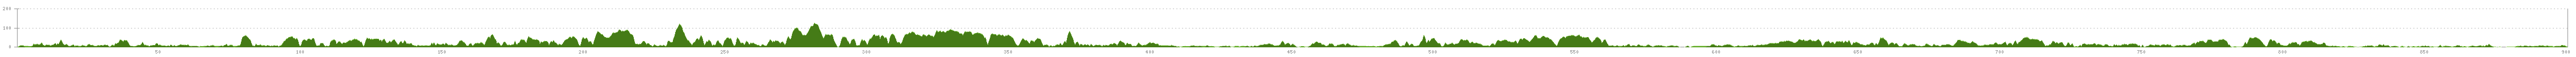 Elevation profile Cycle Route La Littorale Roscoff - Saint Nazaire